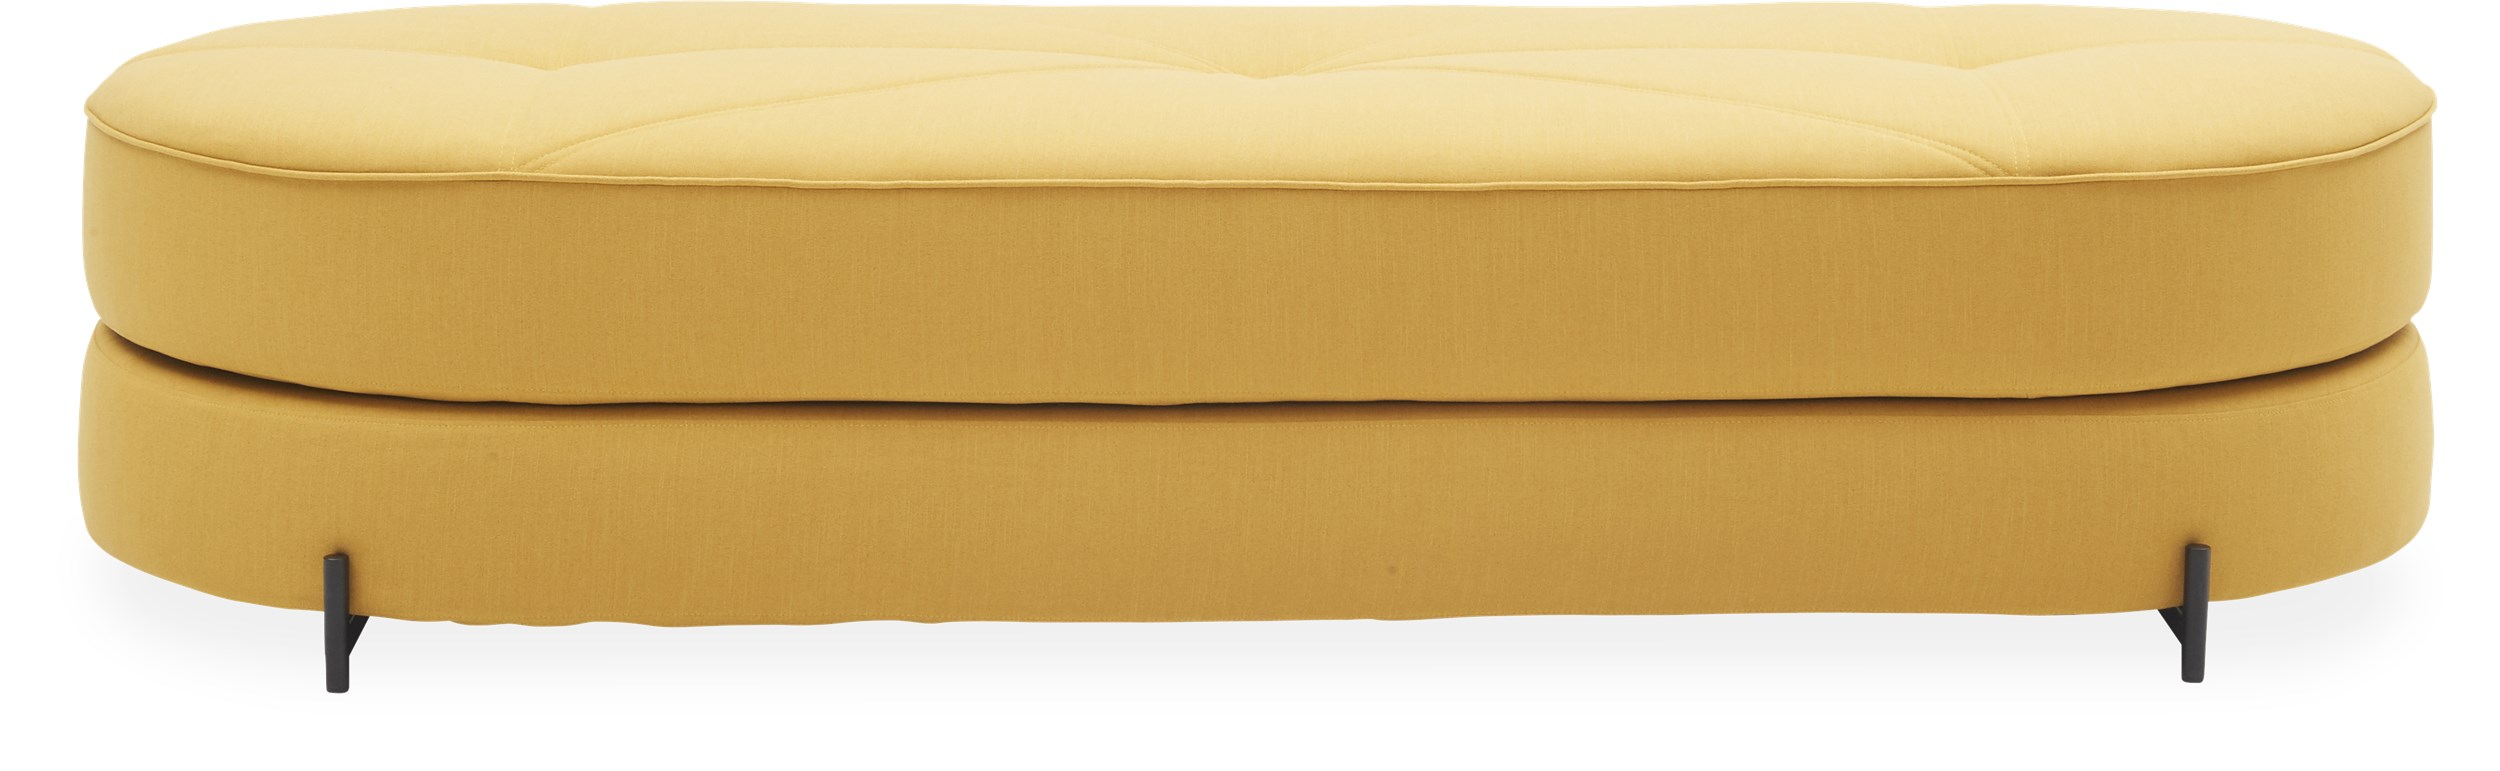 Innovation Living - Wilfred Sovesofa - Mustard Yellow 501 stof, pocketspring madras og ben i sort metal